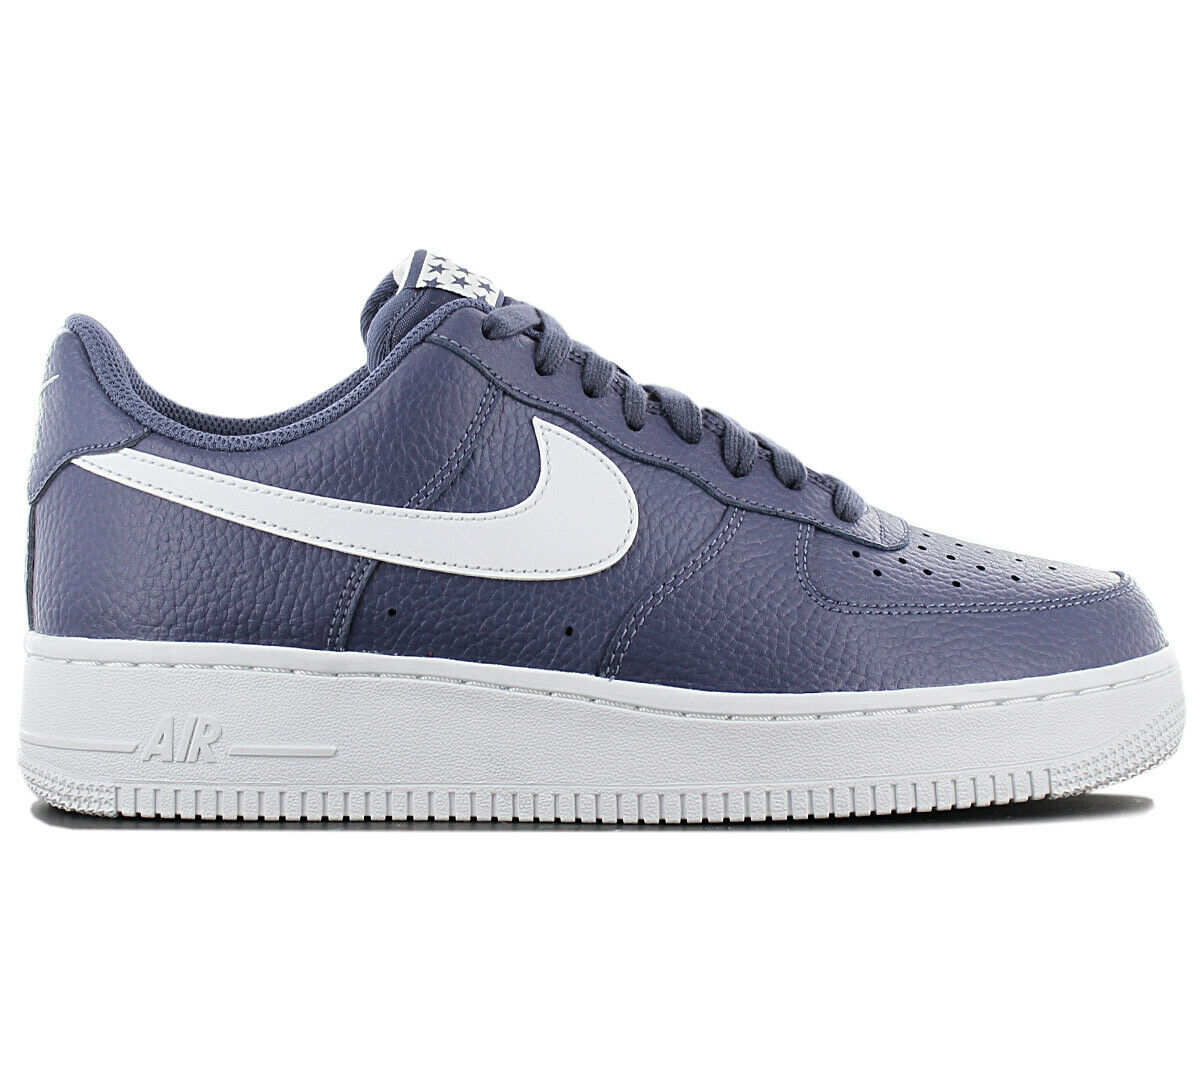 Nike Air Force 1 One Low 07 Men's Sneakers shoes Aa4083-401 Leather bluee New